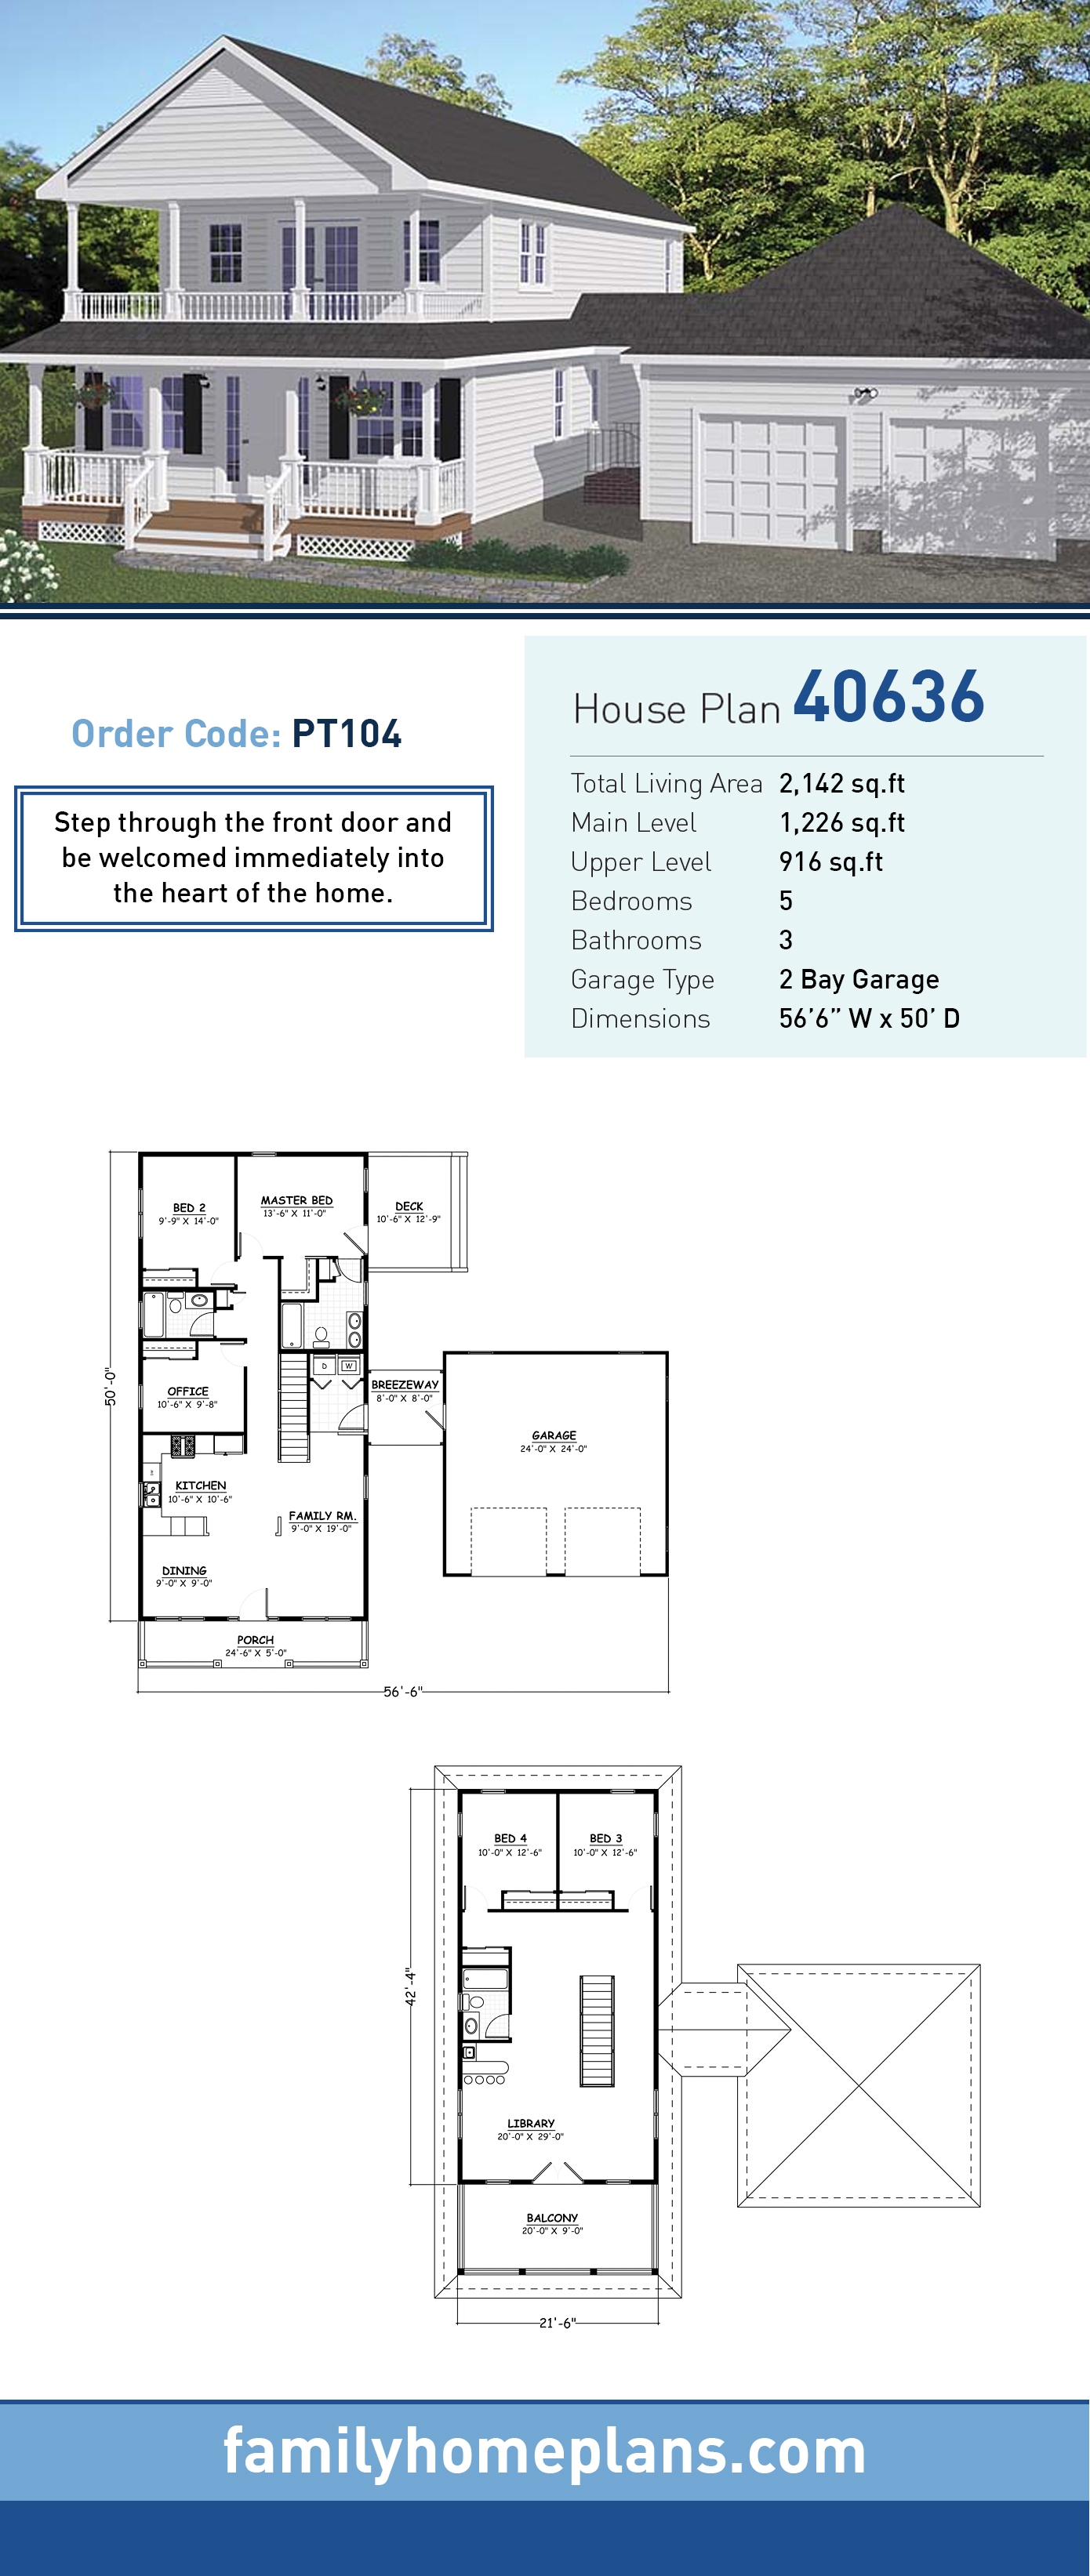 Country, Southern, Traditional House Plan 40636 with 5 Beds, 3 Baths, 2 Car Garage